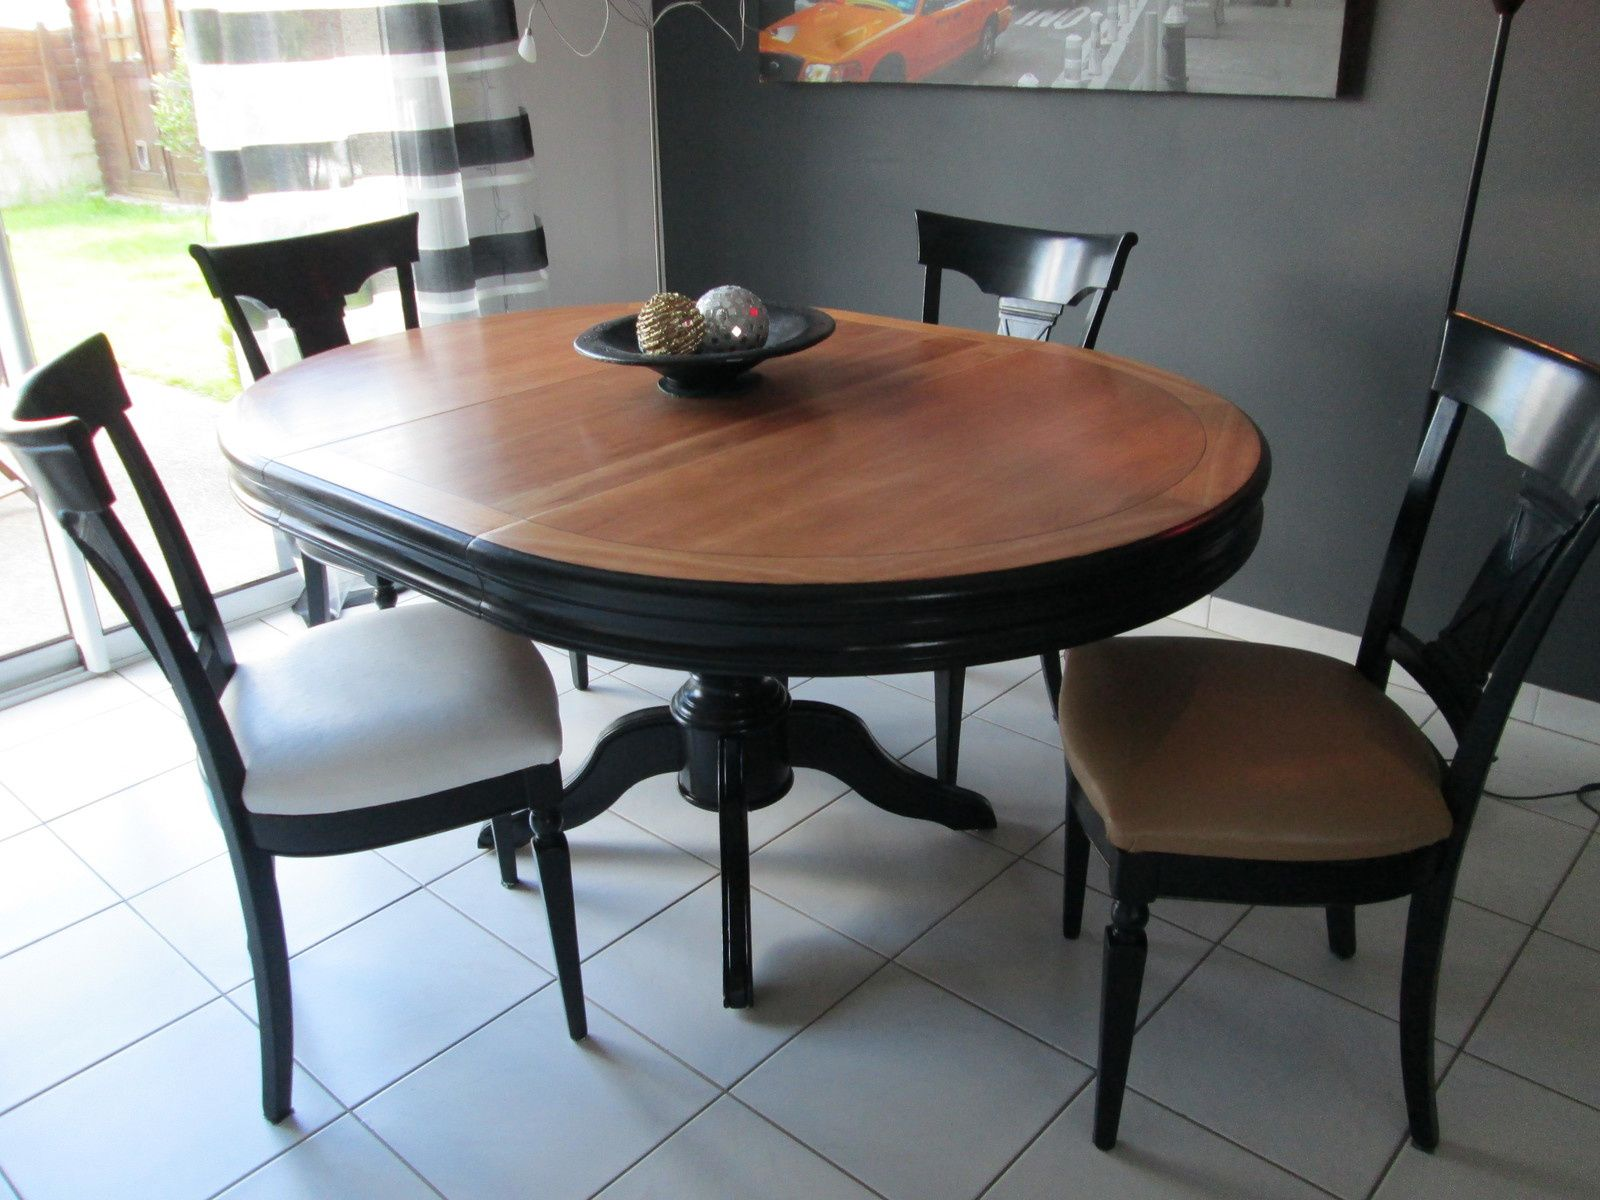 relooking d 39 une table louis philippe et chaises. Black Bedroom Furniture Sets. Home Design Ideas